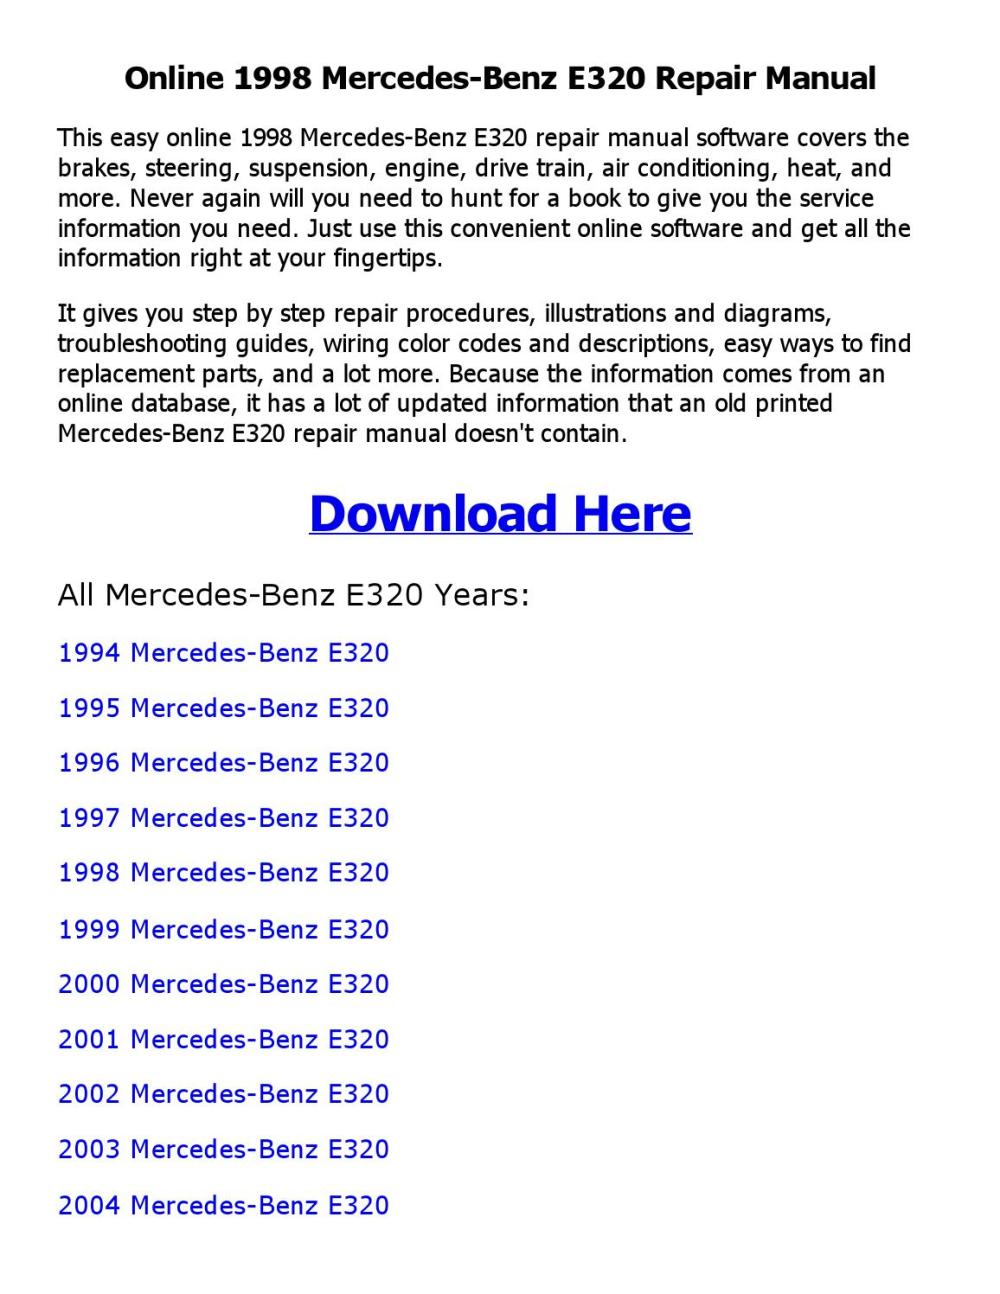 medium resolution of 1998 mercedes benz e320 repair manual online by mhraihan issuu